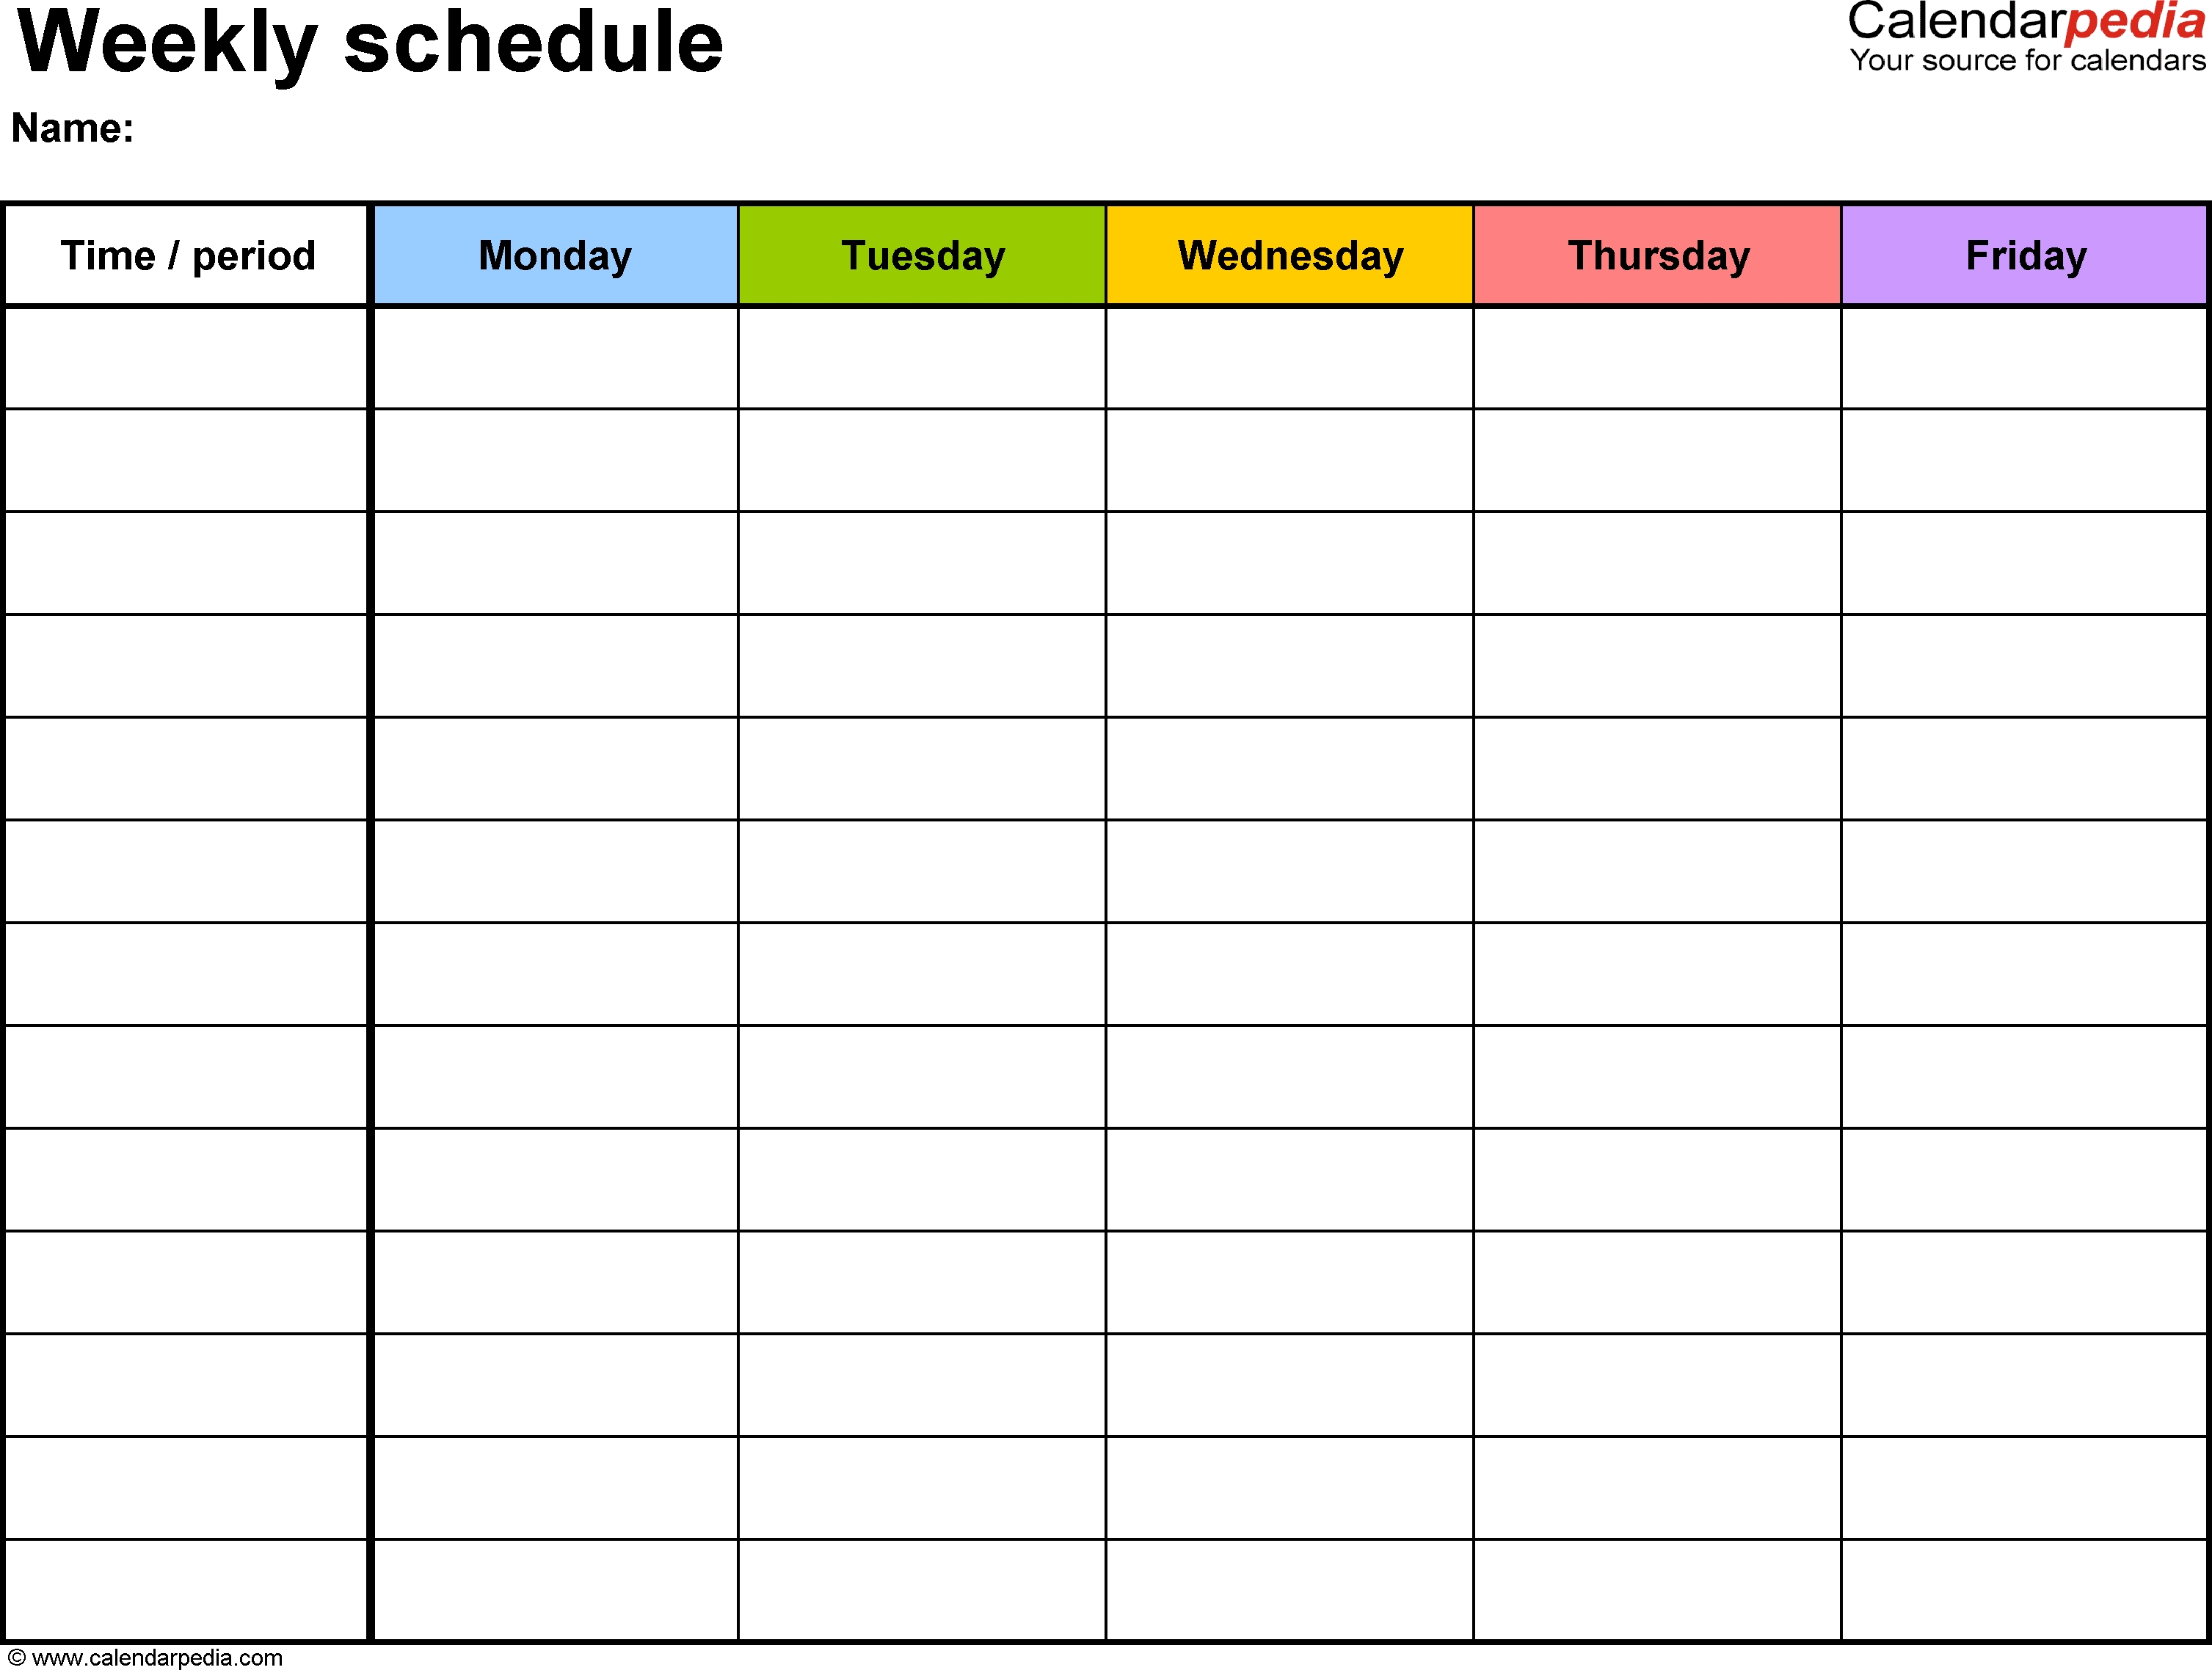 Free Weekly Schedule Templates For Word - 18 Templates within Free Printable Calendar Monday Through Friday With Notes